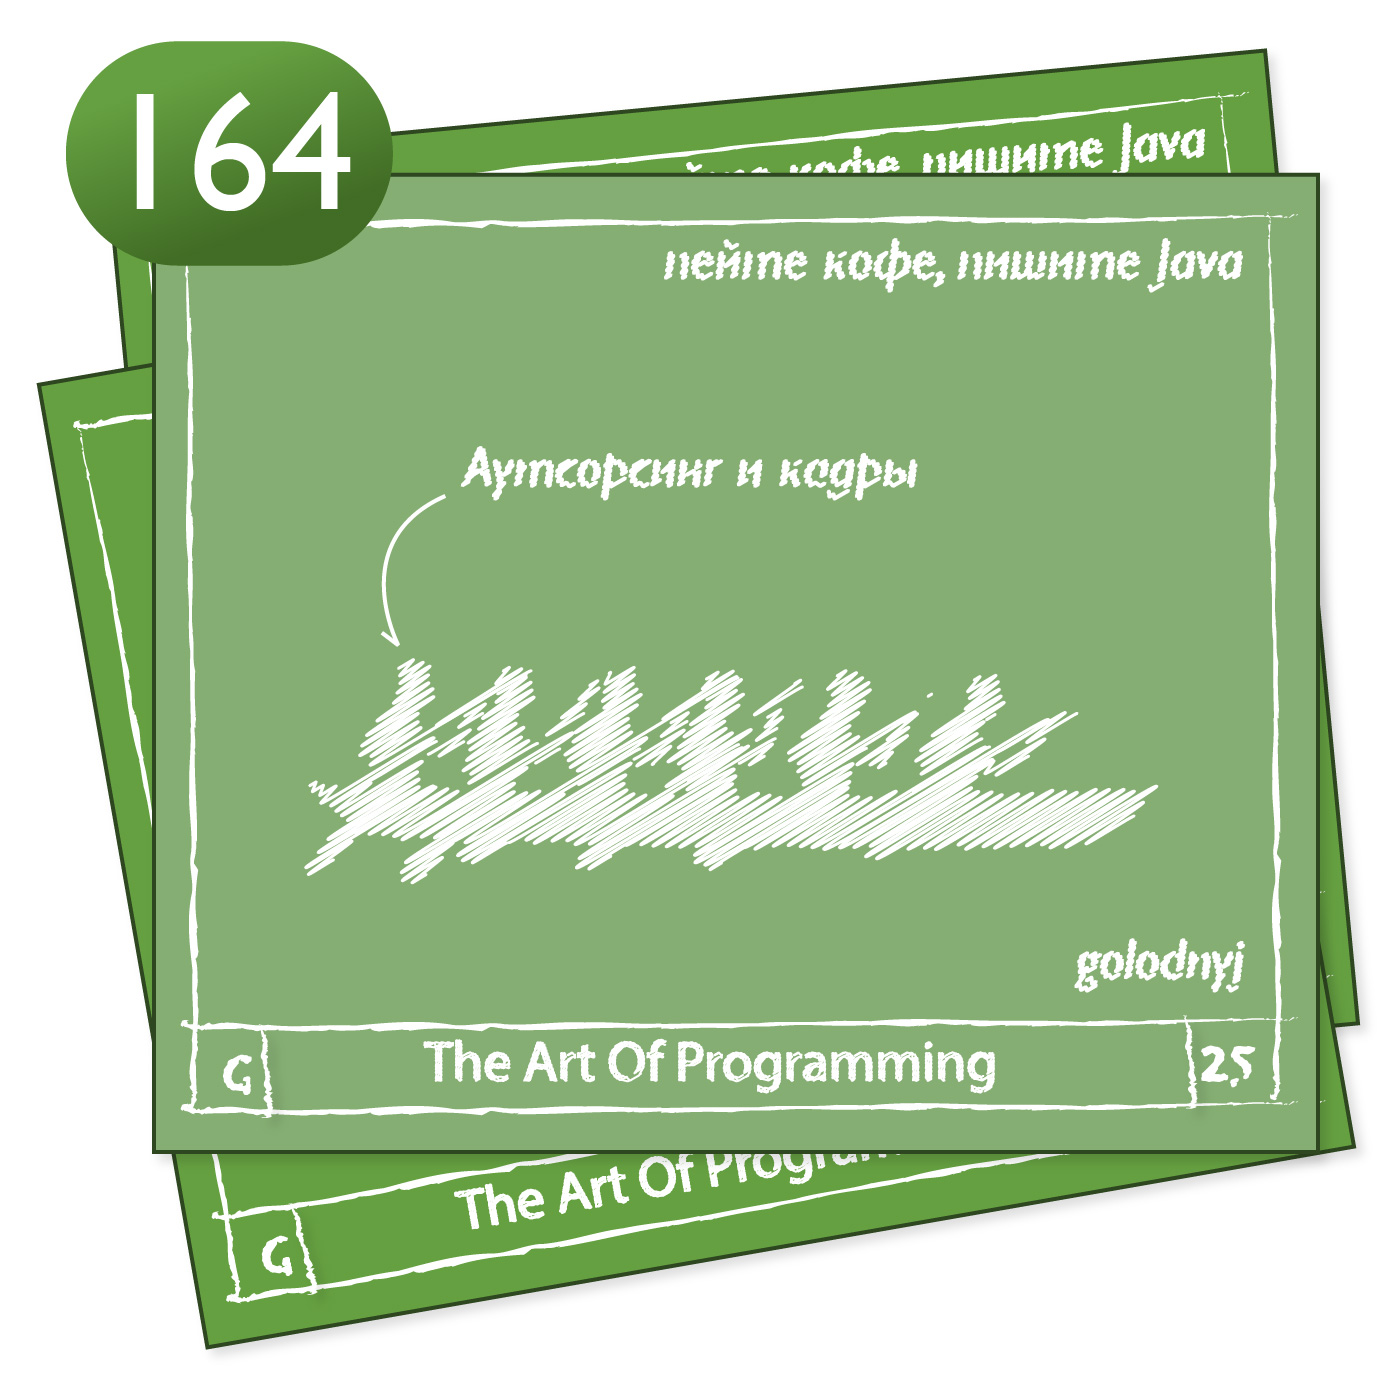 Выпуск №164 — The Art Of Programming [ Remote ] Аутсорсинг и кадры